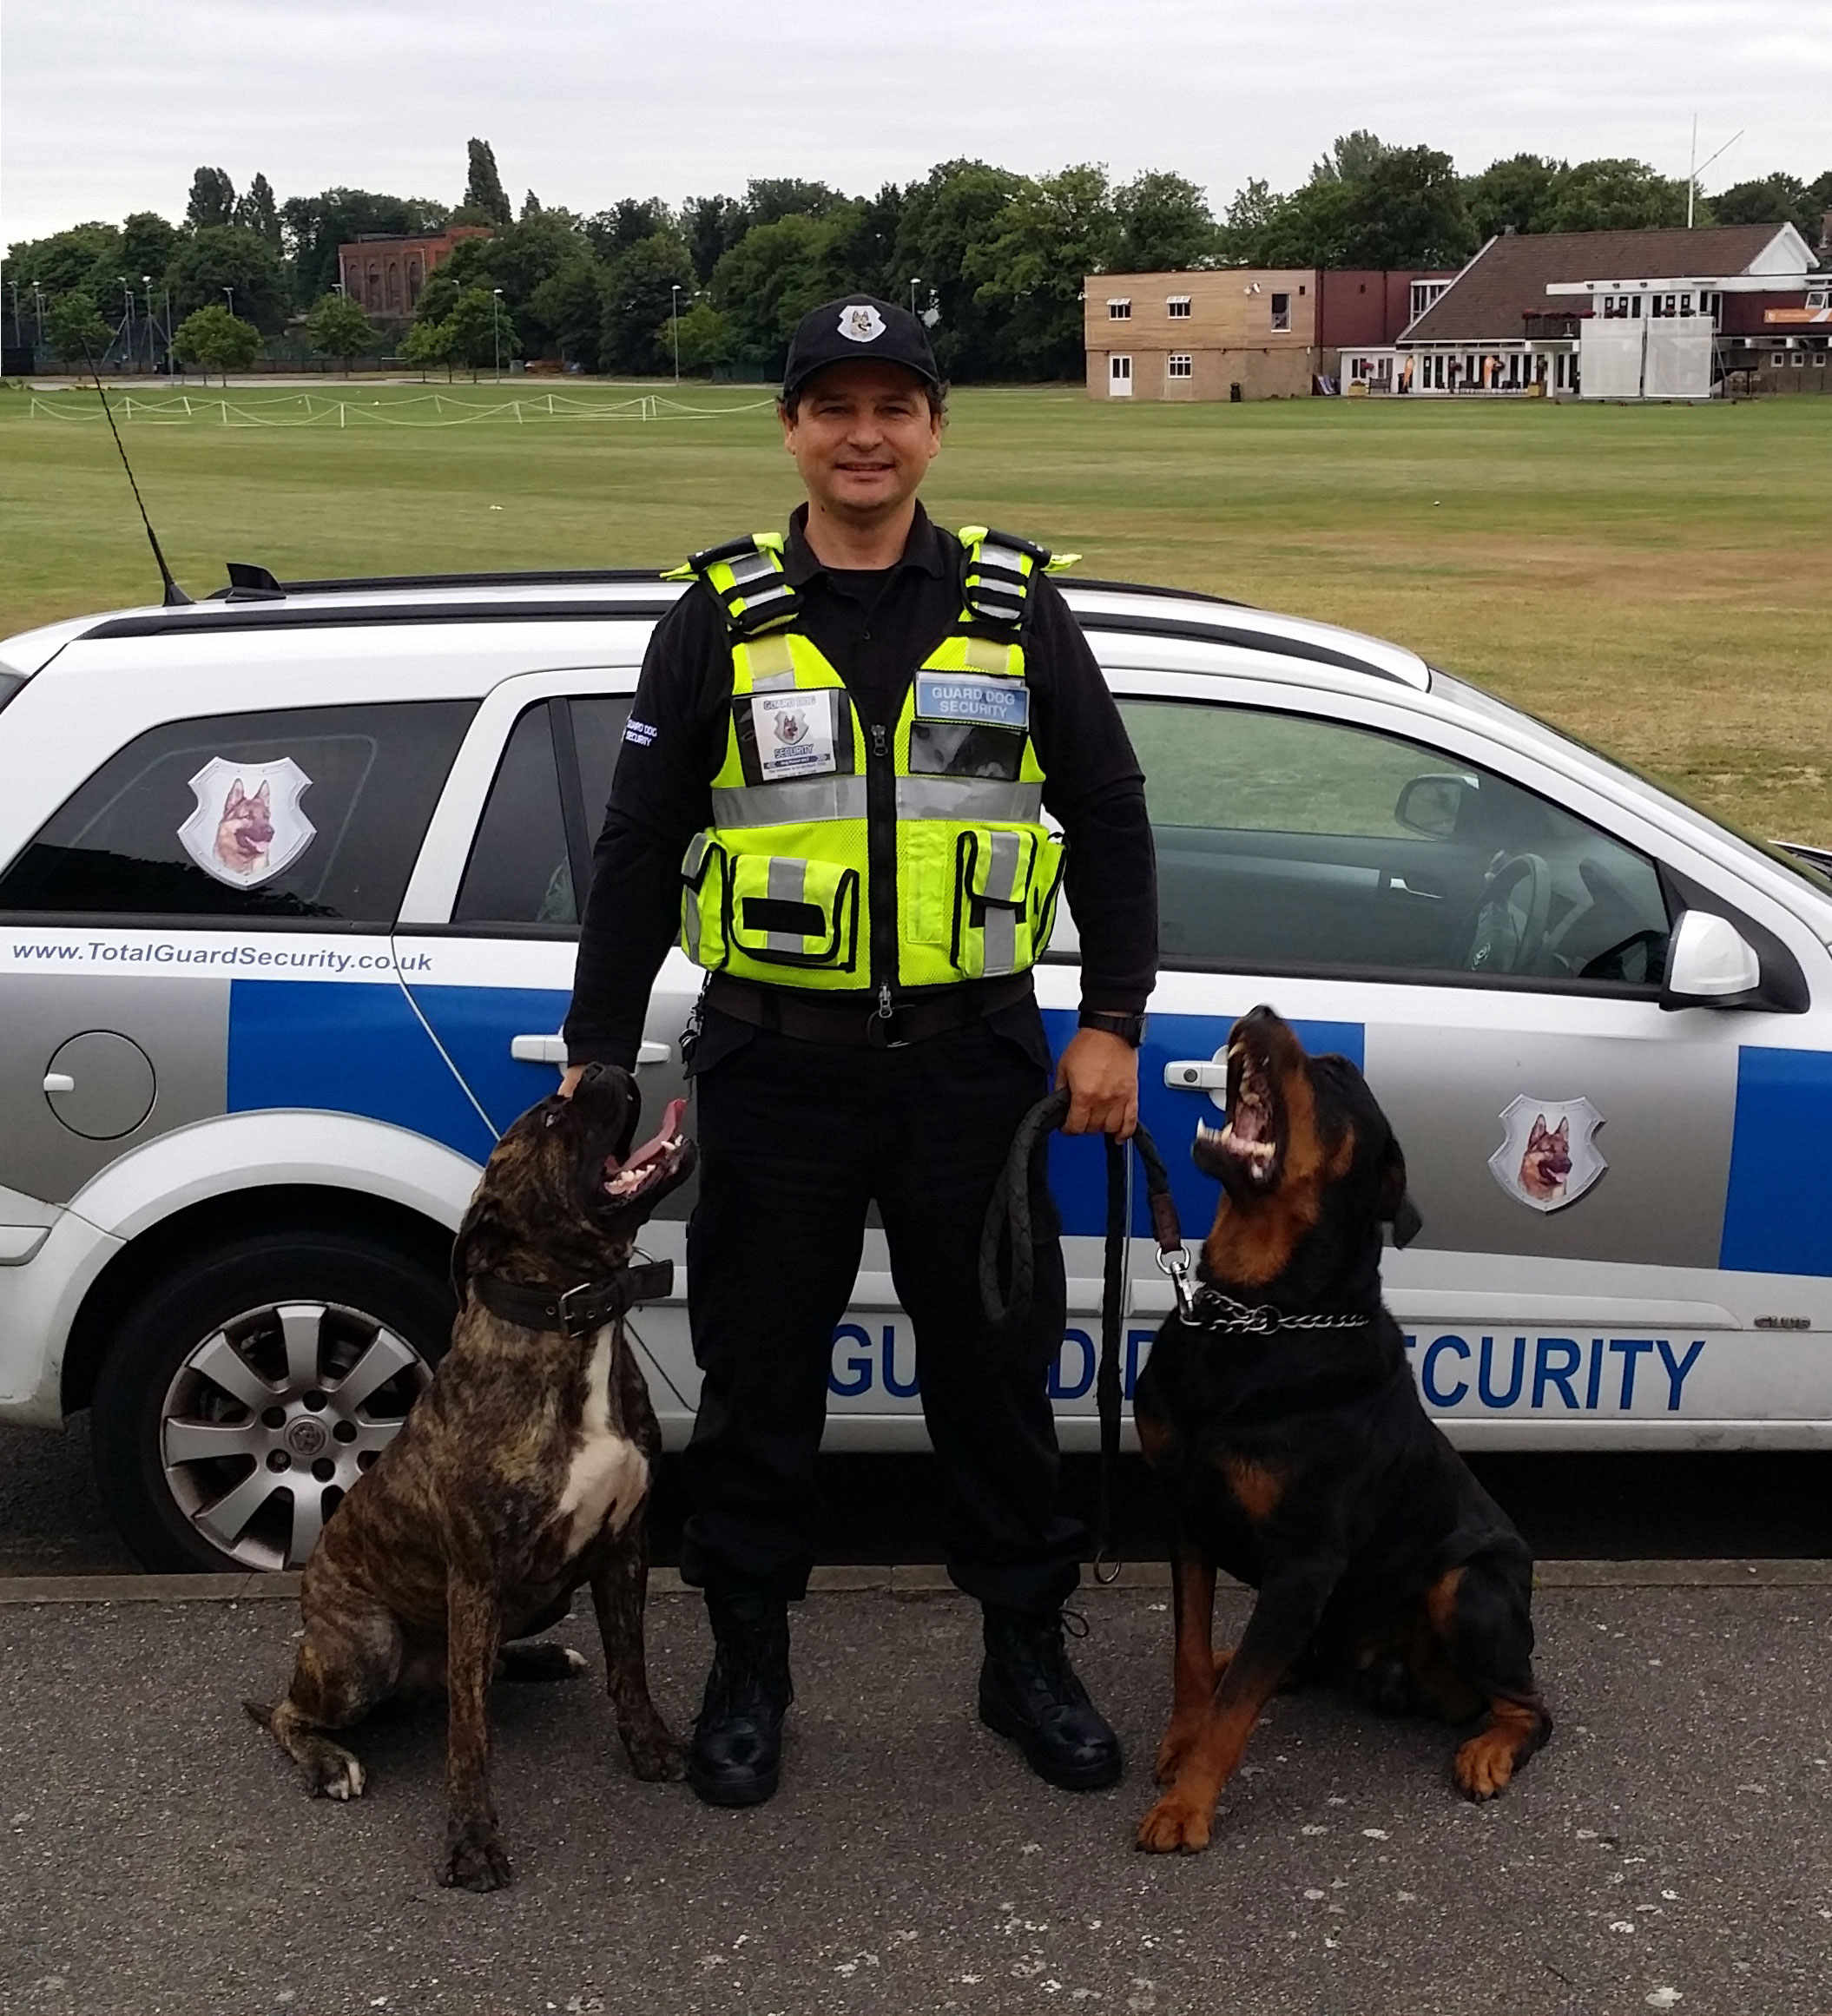 Guard Dog Security Units provide you with an ex police or ex military